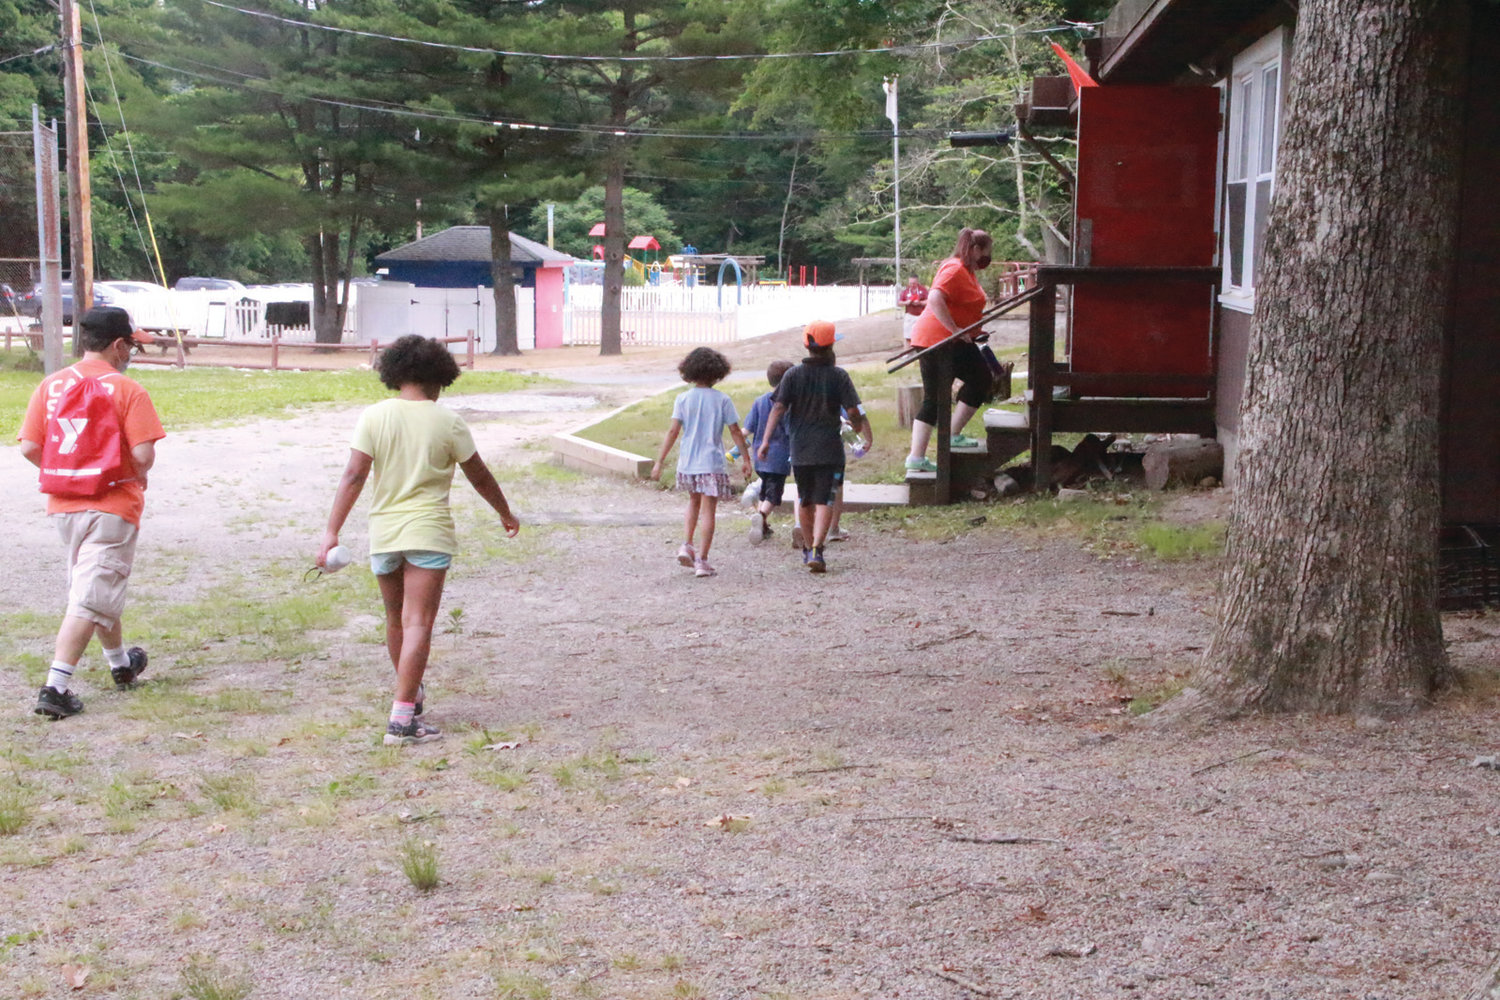 ON TO THE NEXT ACTIVITY: Campers follow their counselor to the next event of the day, which happened to be lunch.